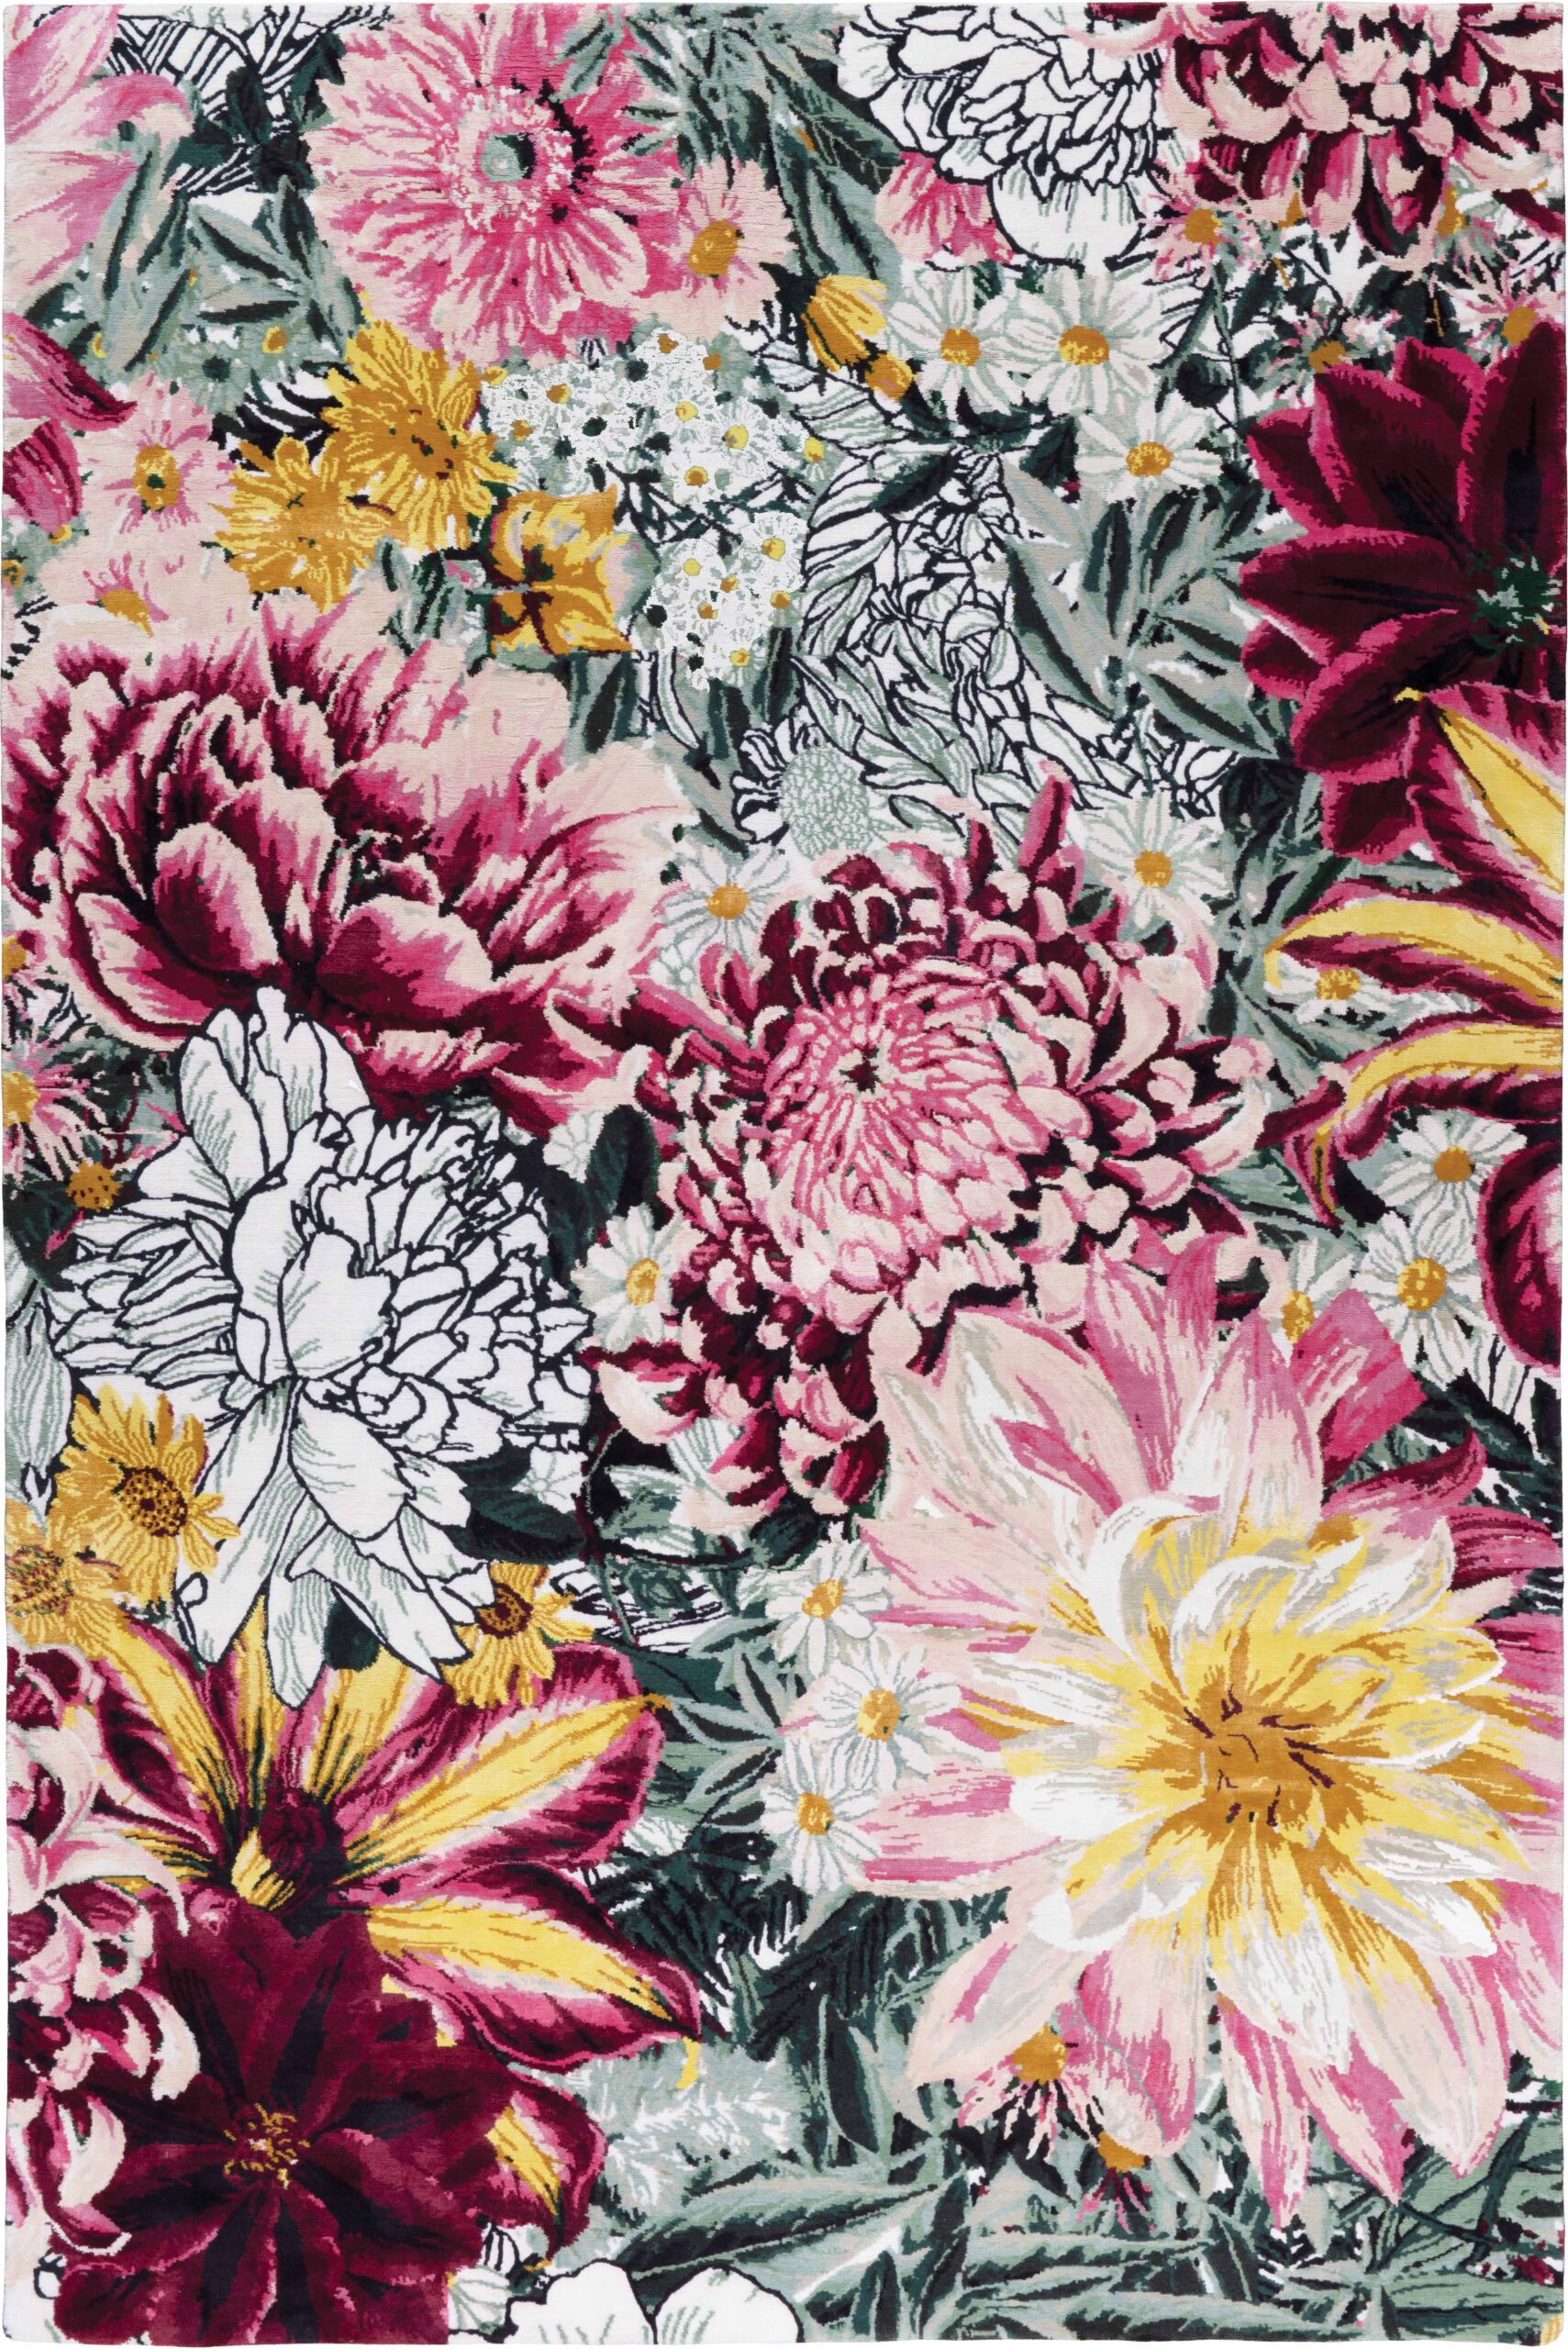 BOTANICAL PARADISE, Mary Katrantzou for The Rug Company